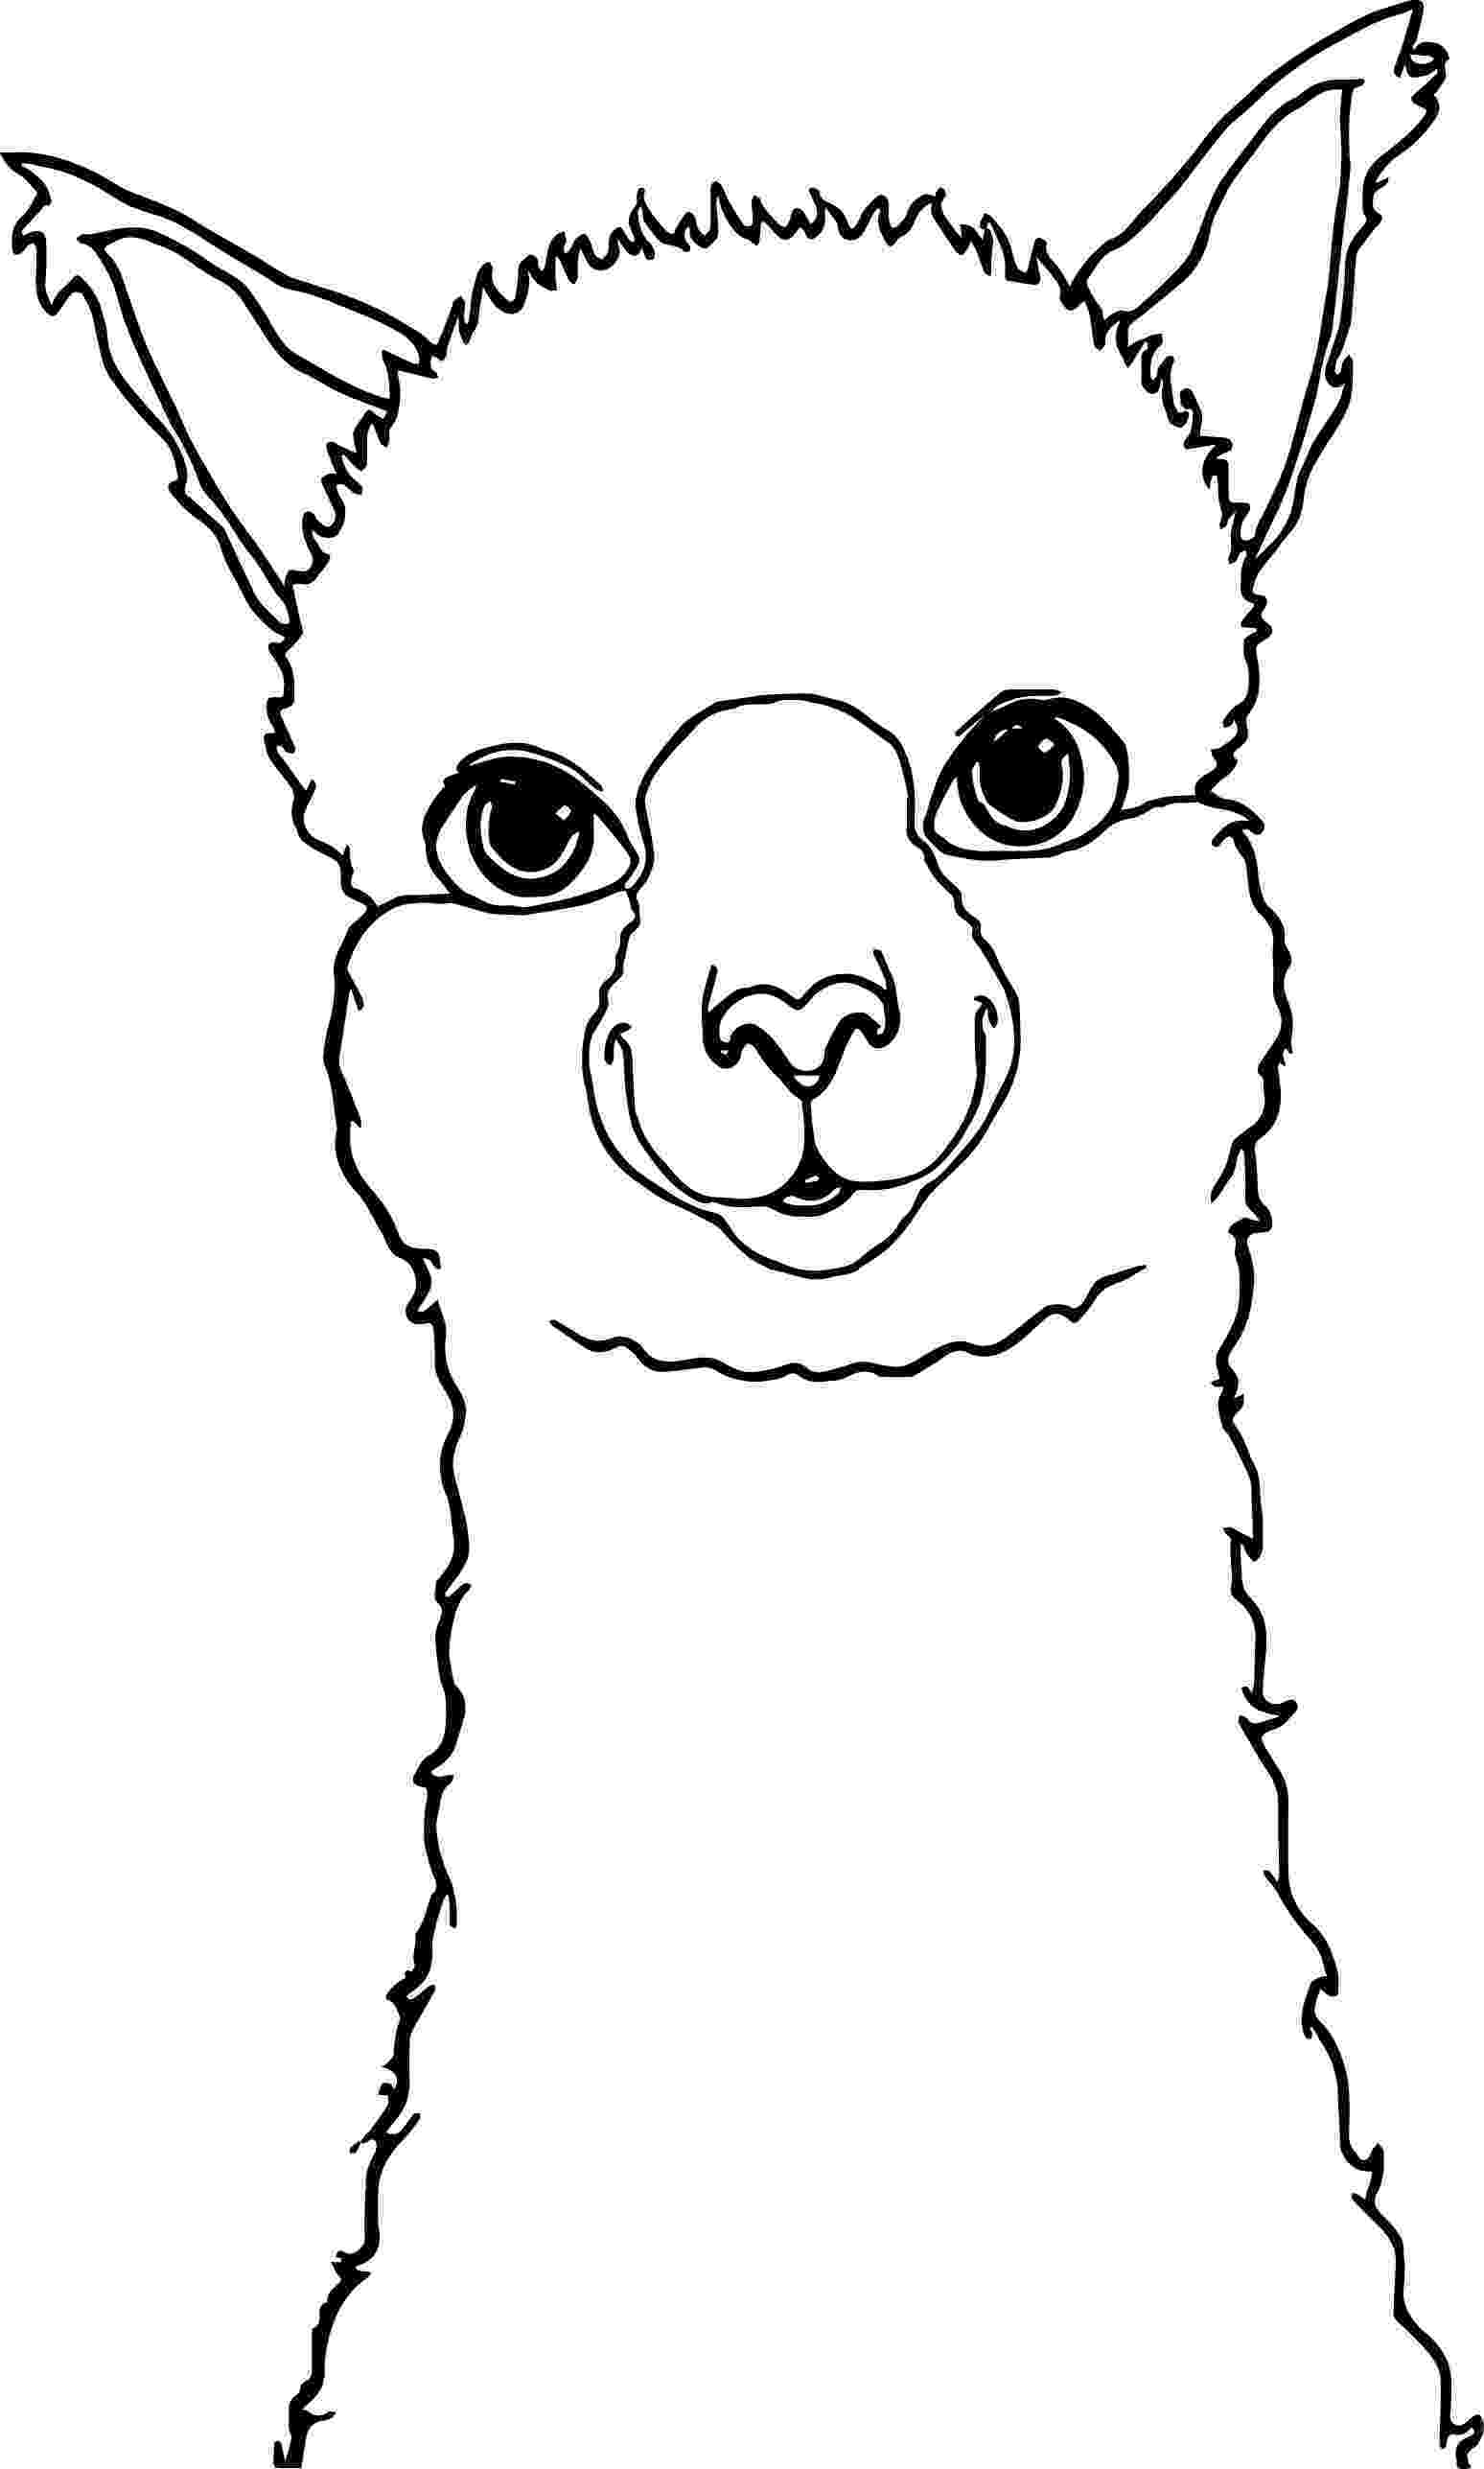 alpaca coloring pages cartoon alpaca coloring page wecoloringpagecom coloring alpaca pages